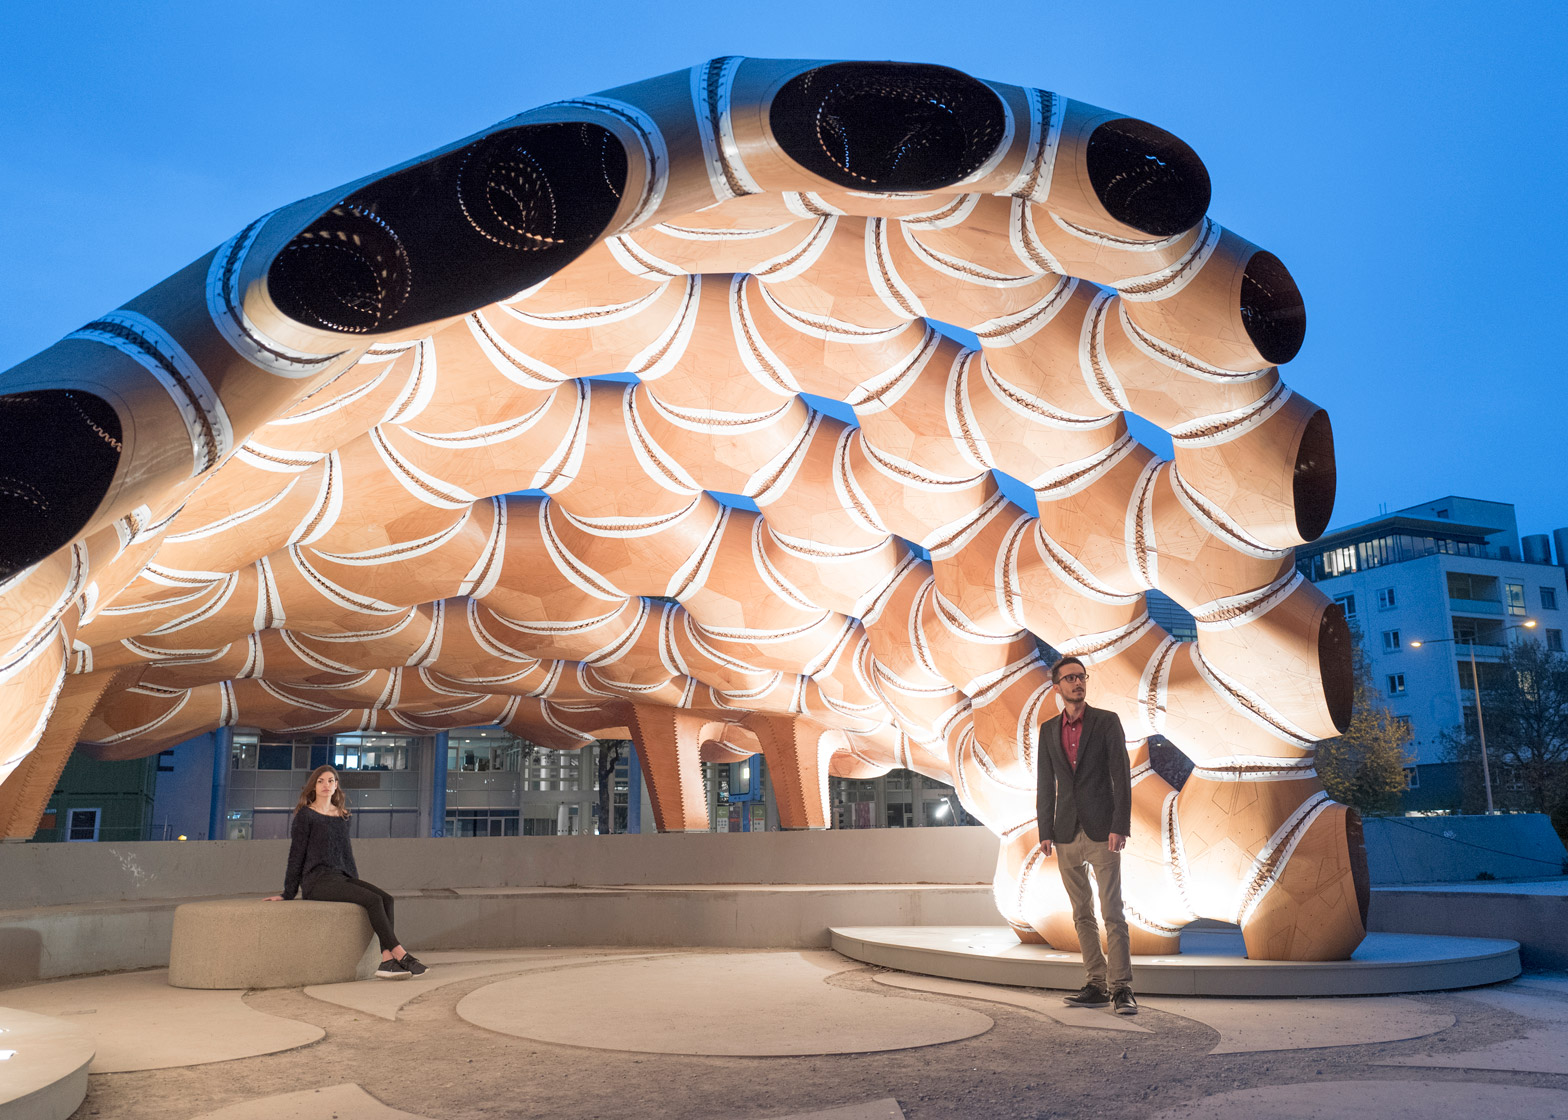 Plywood sheets used to build a Pavilion at the University of Stuttgart